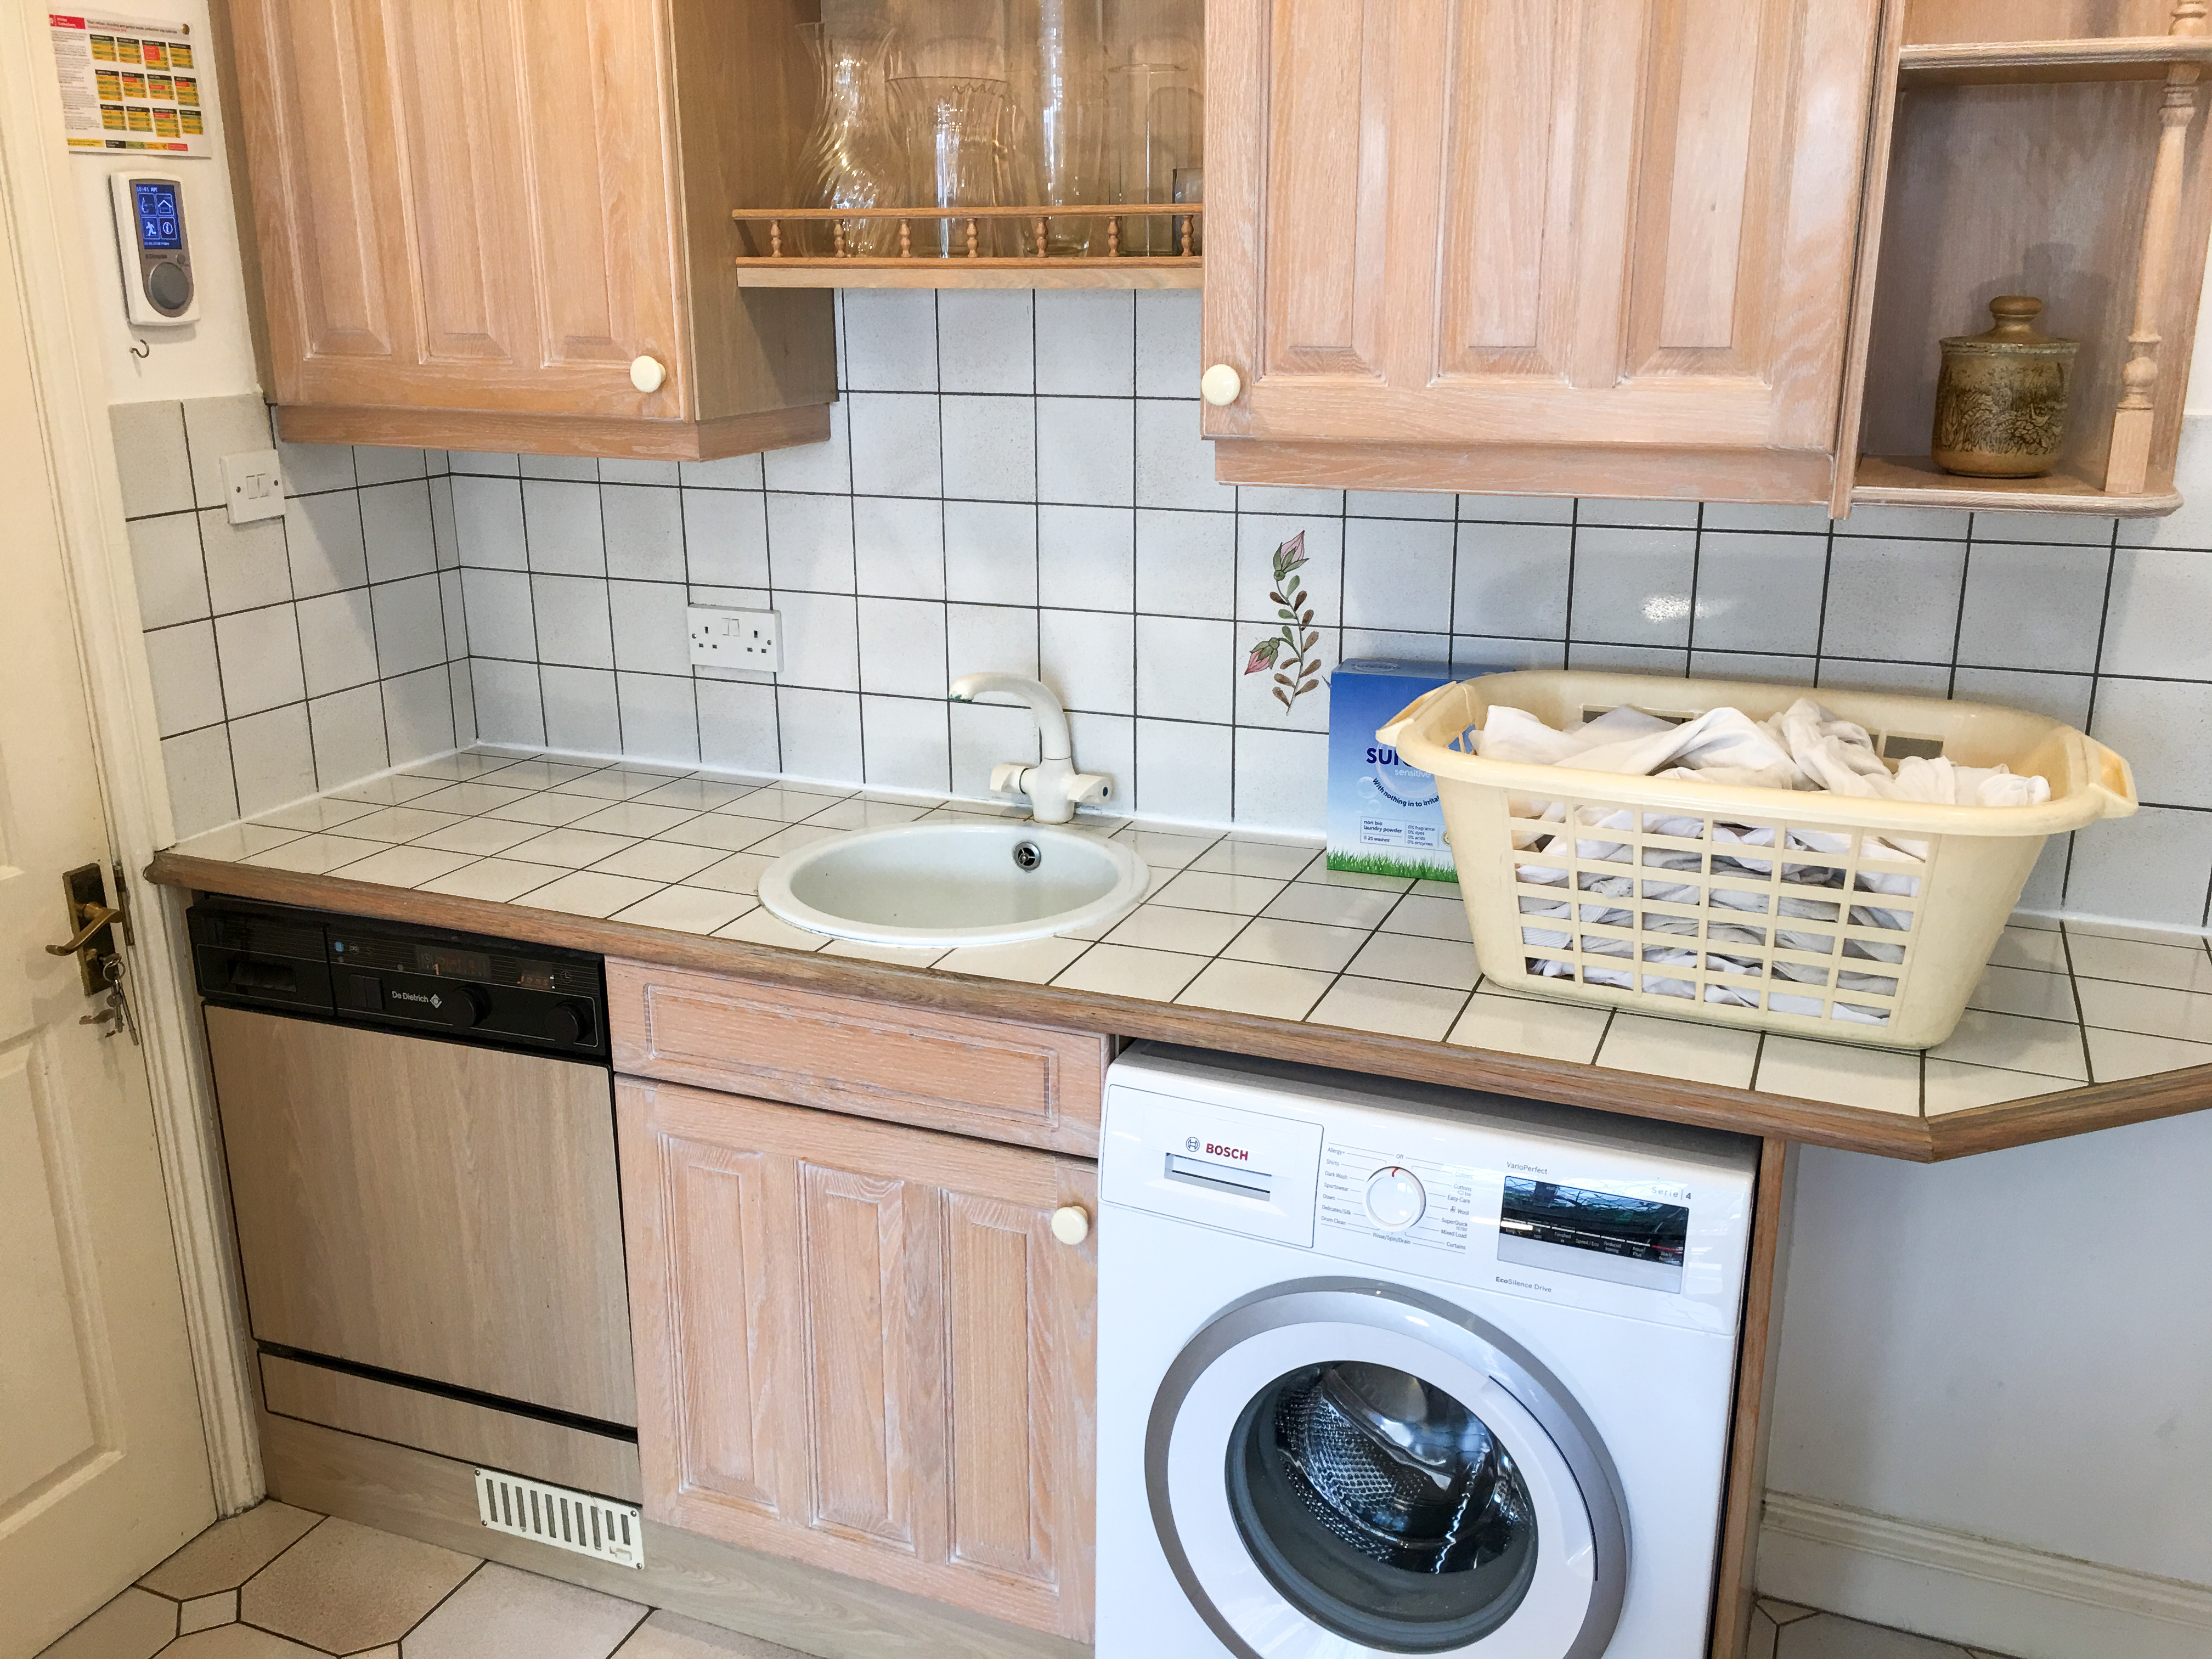 Picture of: Designing A Utility Room My Home Extension